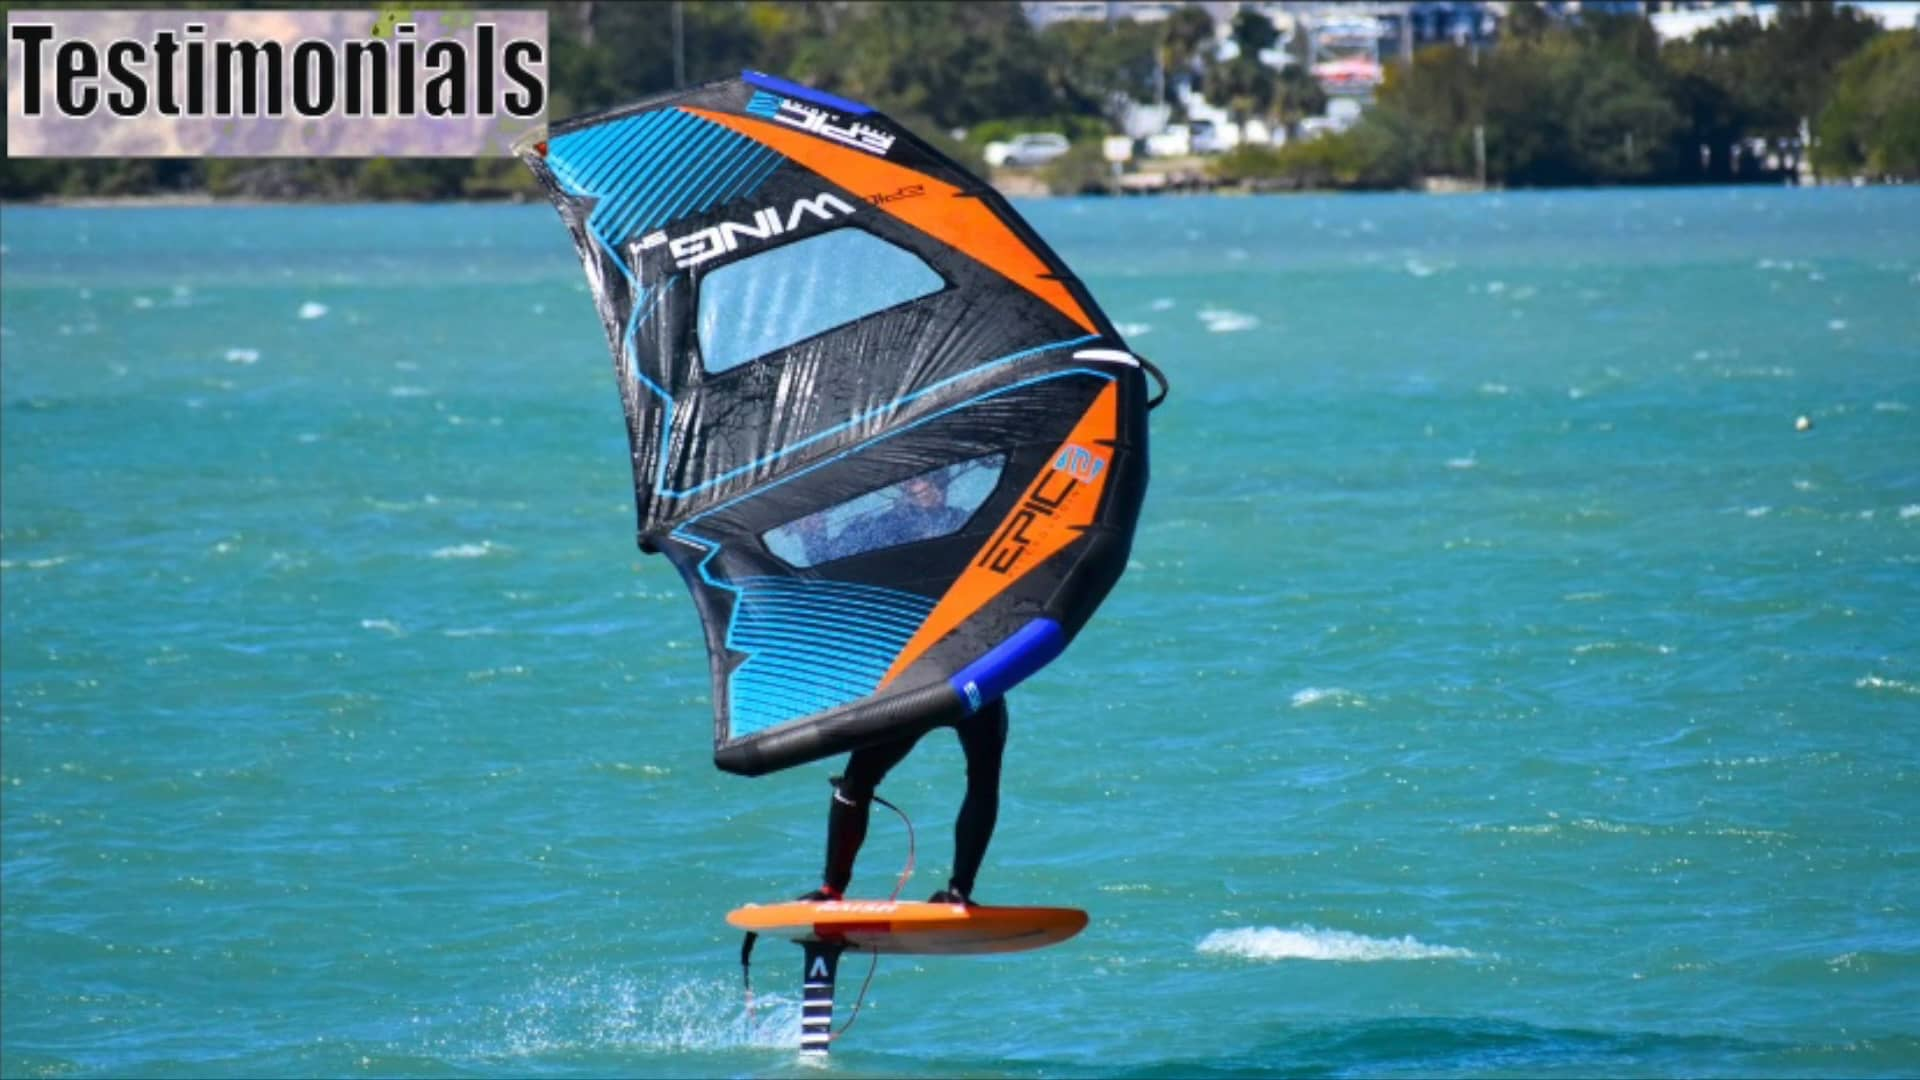 Testimonials from the riders 1 - with Epic Kites Kiteboarding